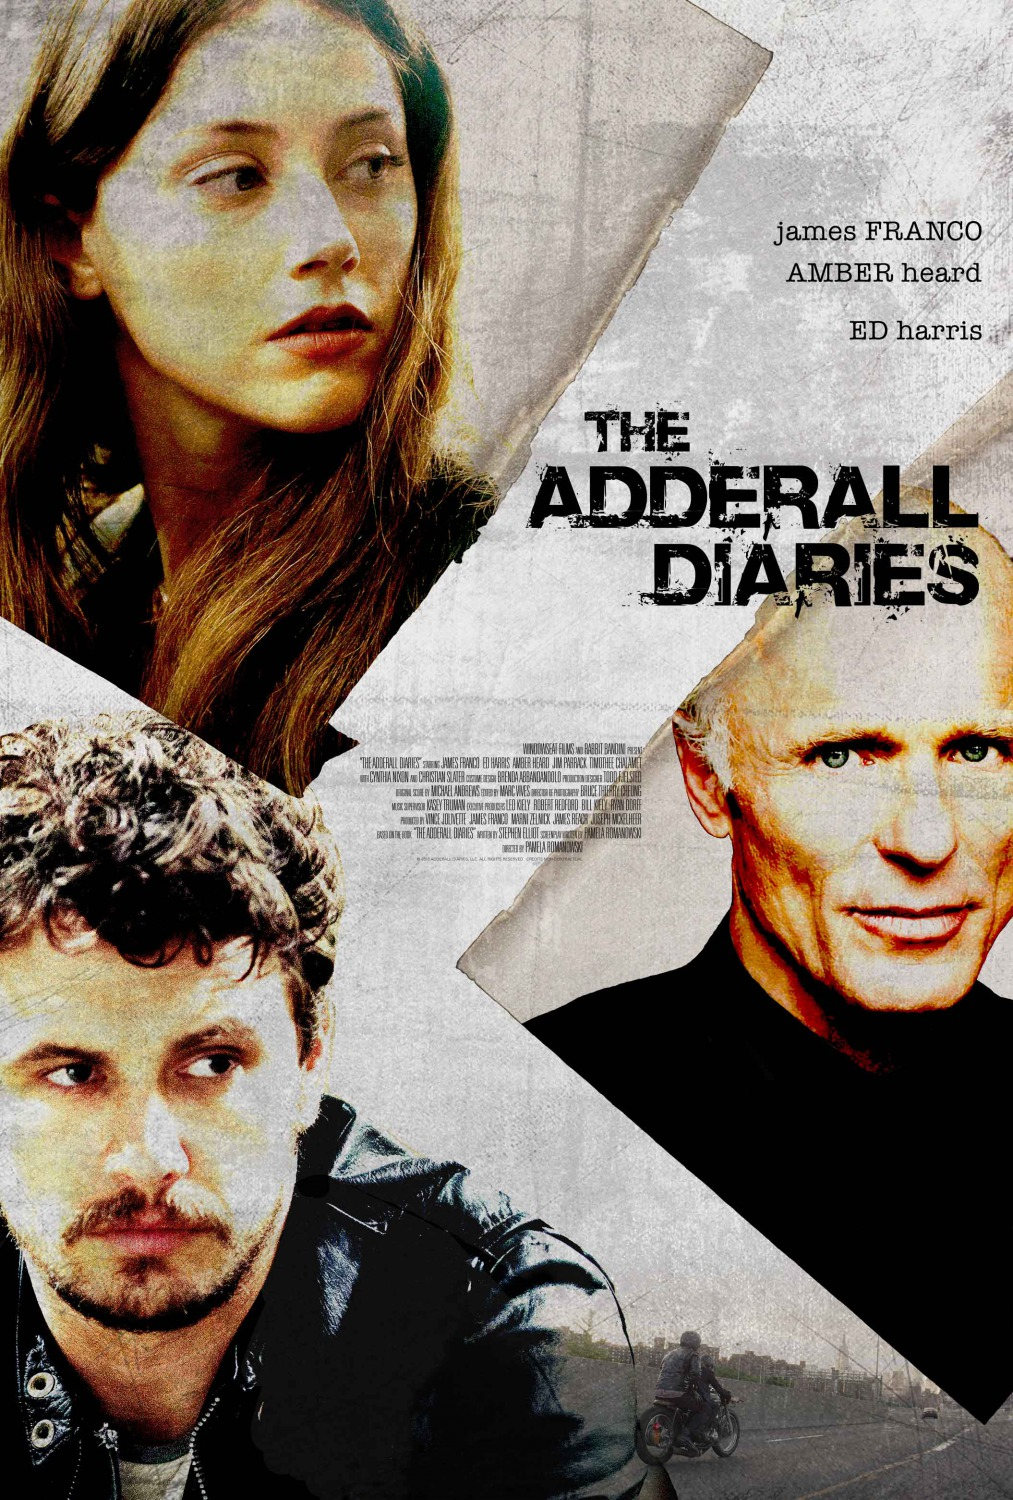 Image result for adderall diaries movie poster